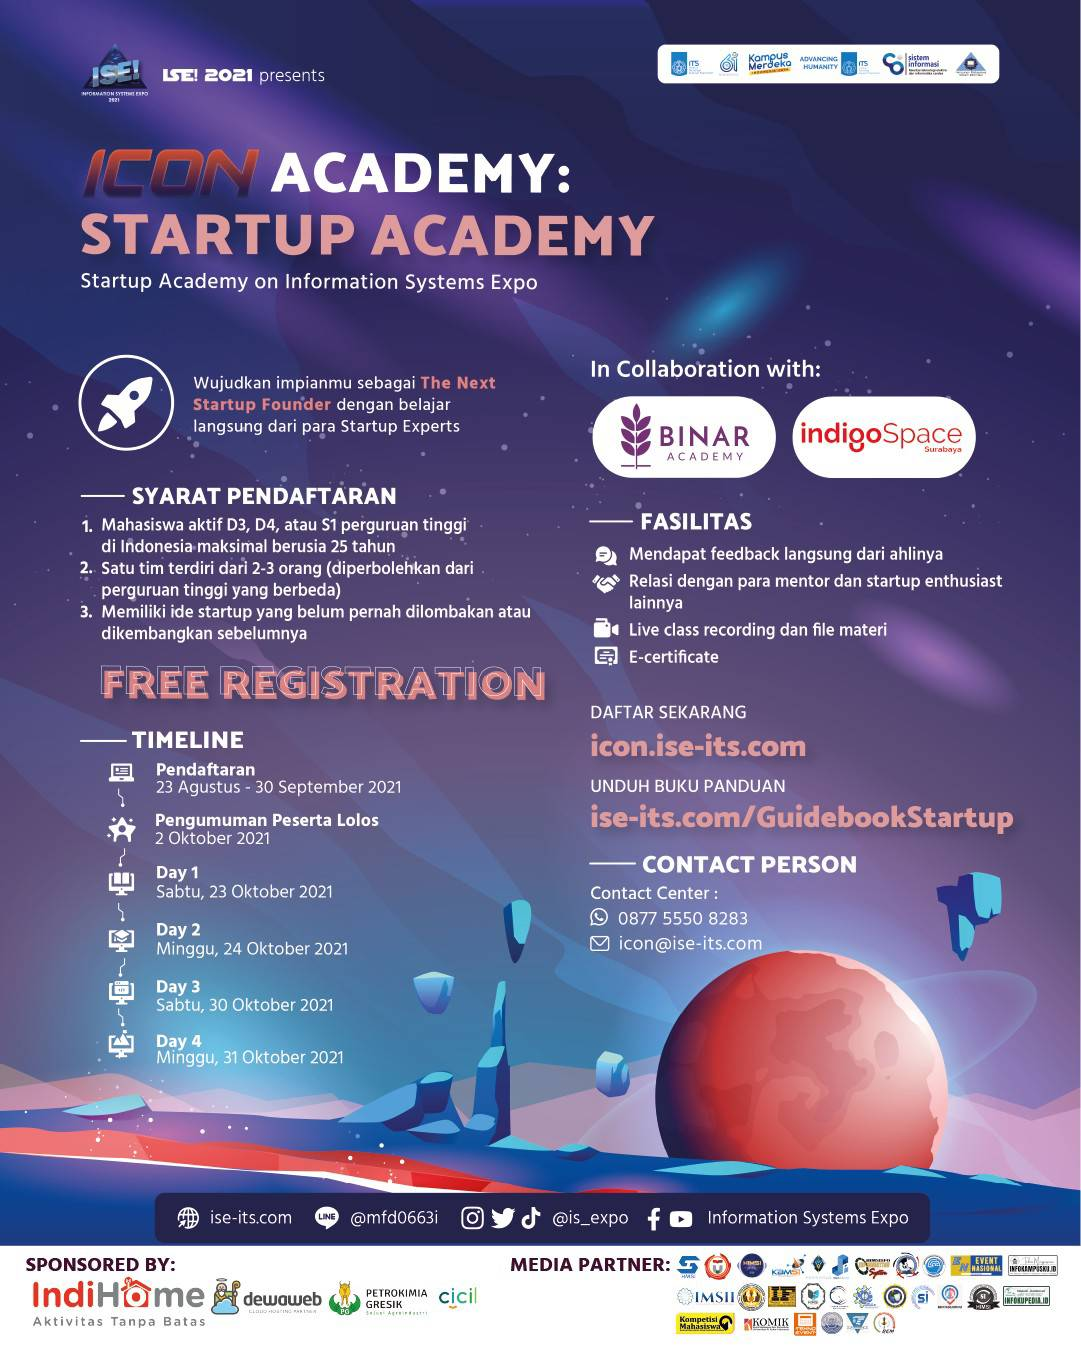 [DATA SCIENCE AND STARTUP ACADEMY BY ICON]